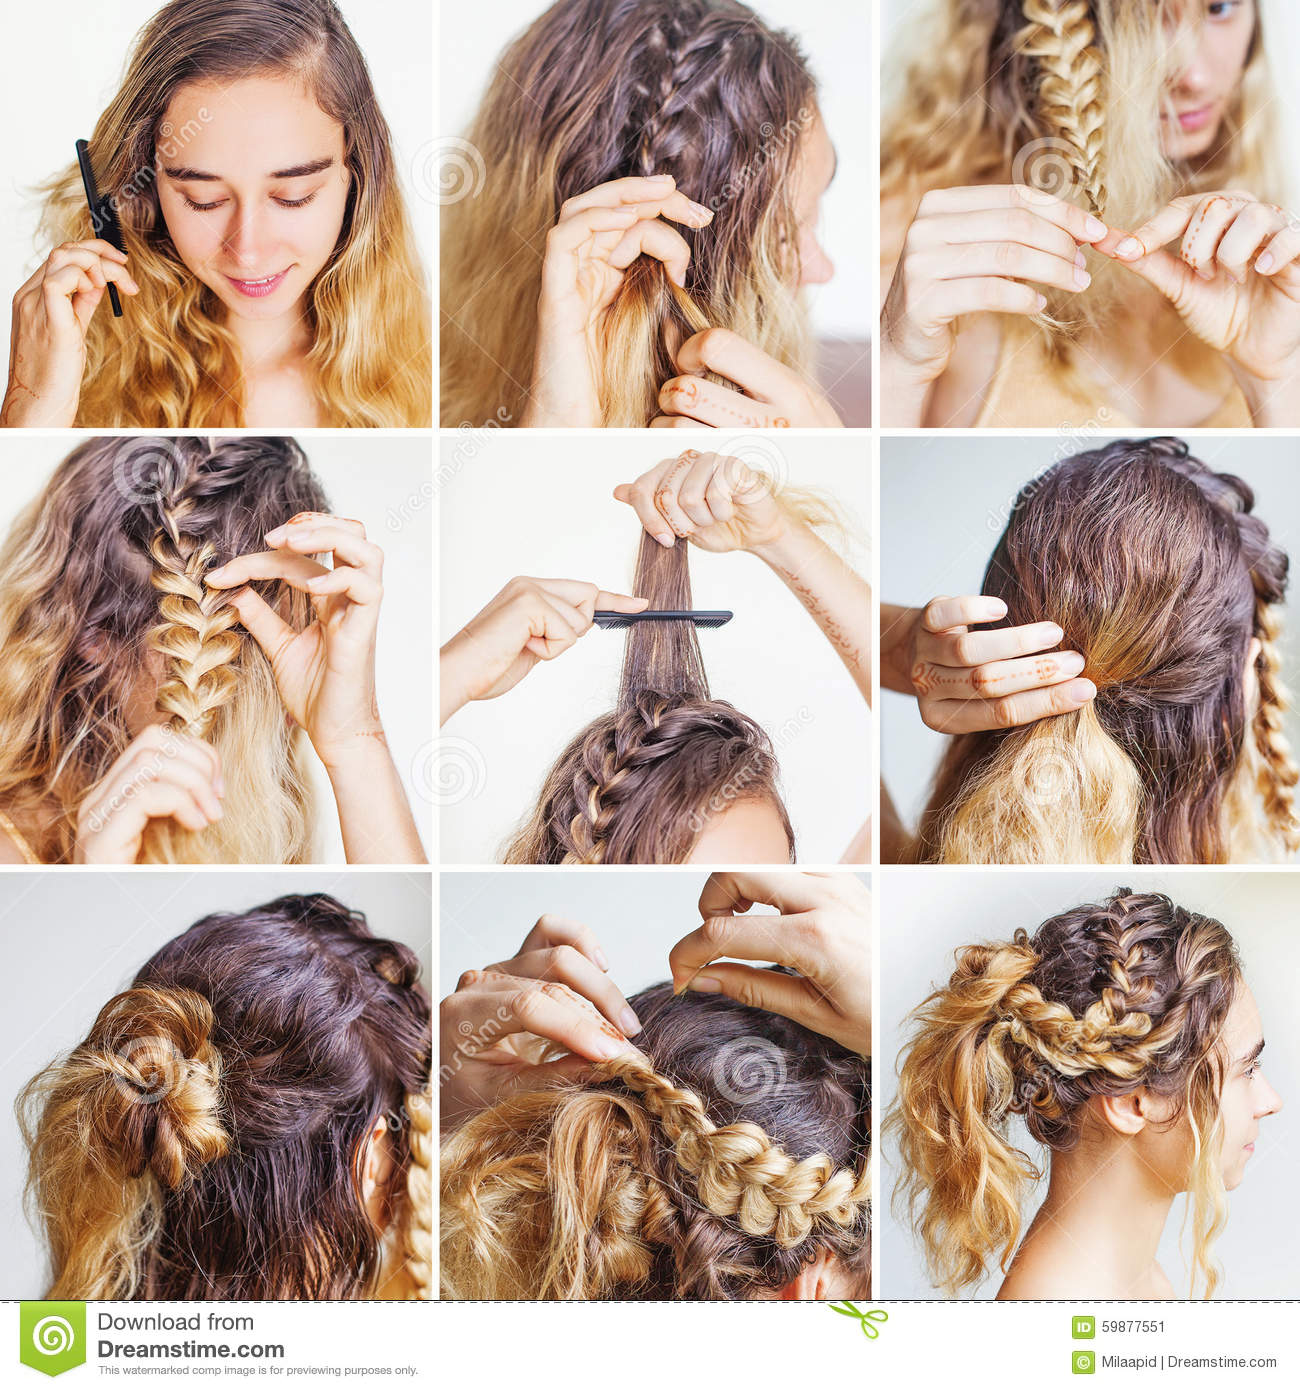 Curly hairstyles tutorials - Royalty Free Stock Photo Download Braided Updo Tutorial For A Curly Hair